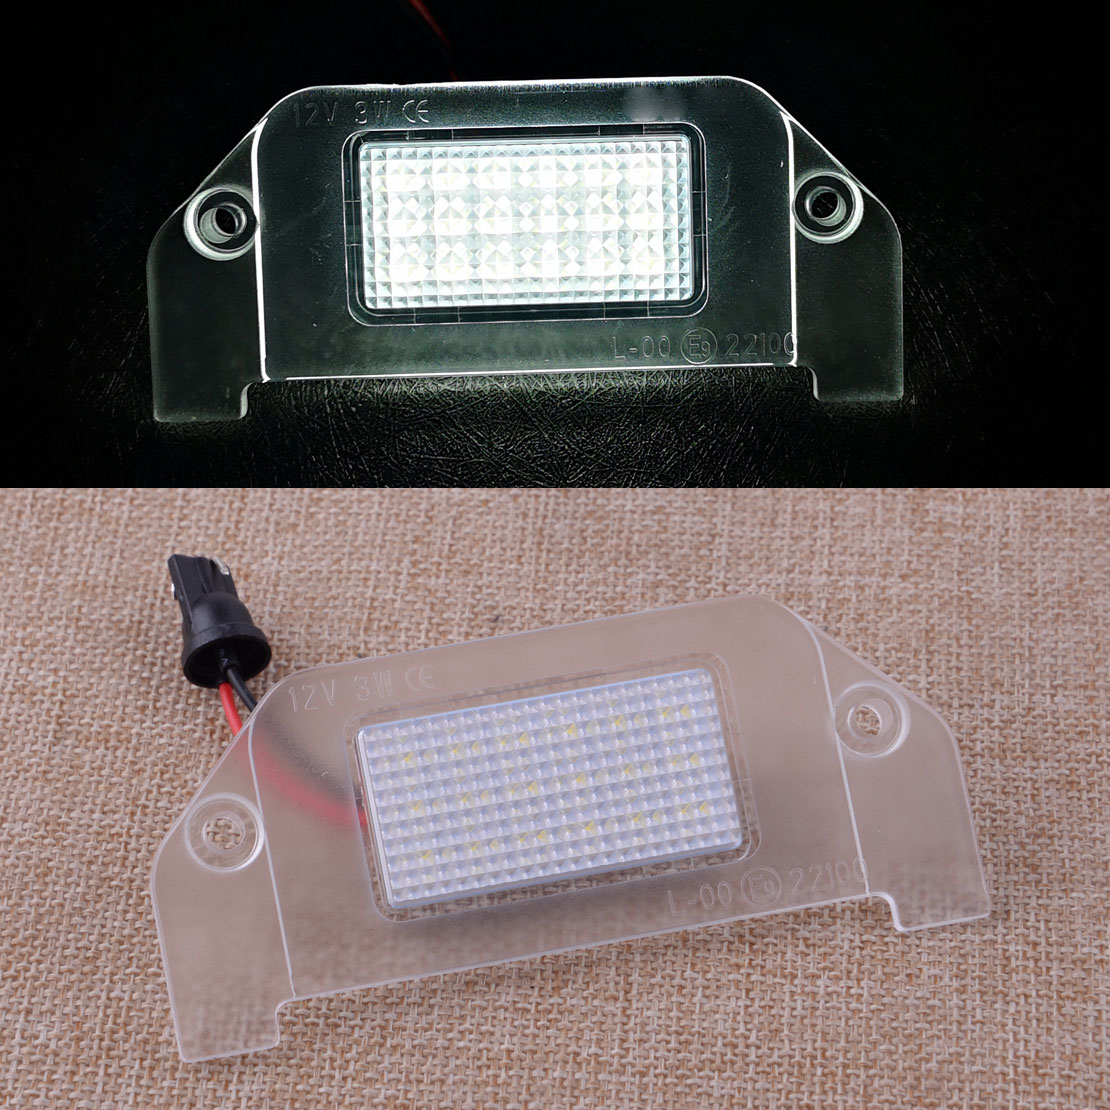 18 LED White Rear Number License Plate Light Lamp Fit for <font><b>Dodge</b></font> <font><b>Charger</b></font> Challenger Dart Avenger Magnum 12V 3W image